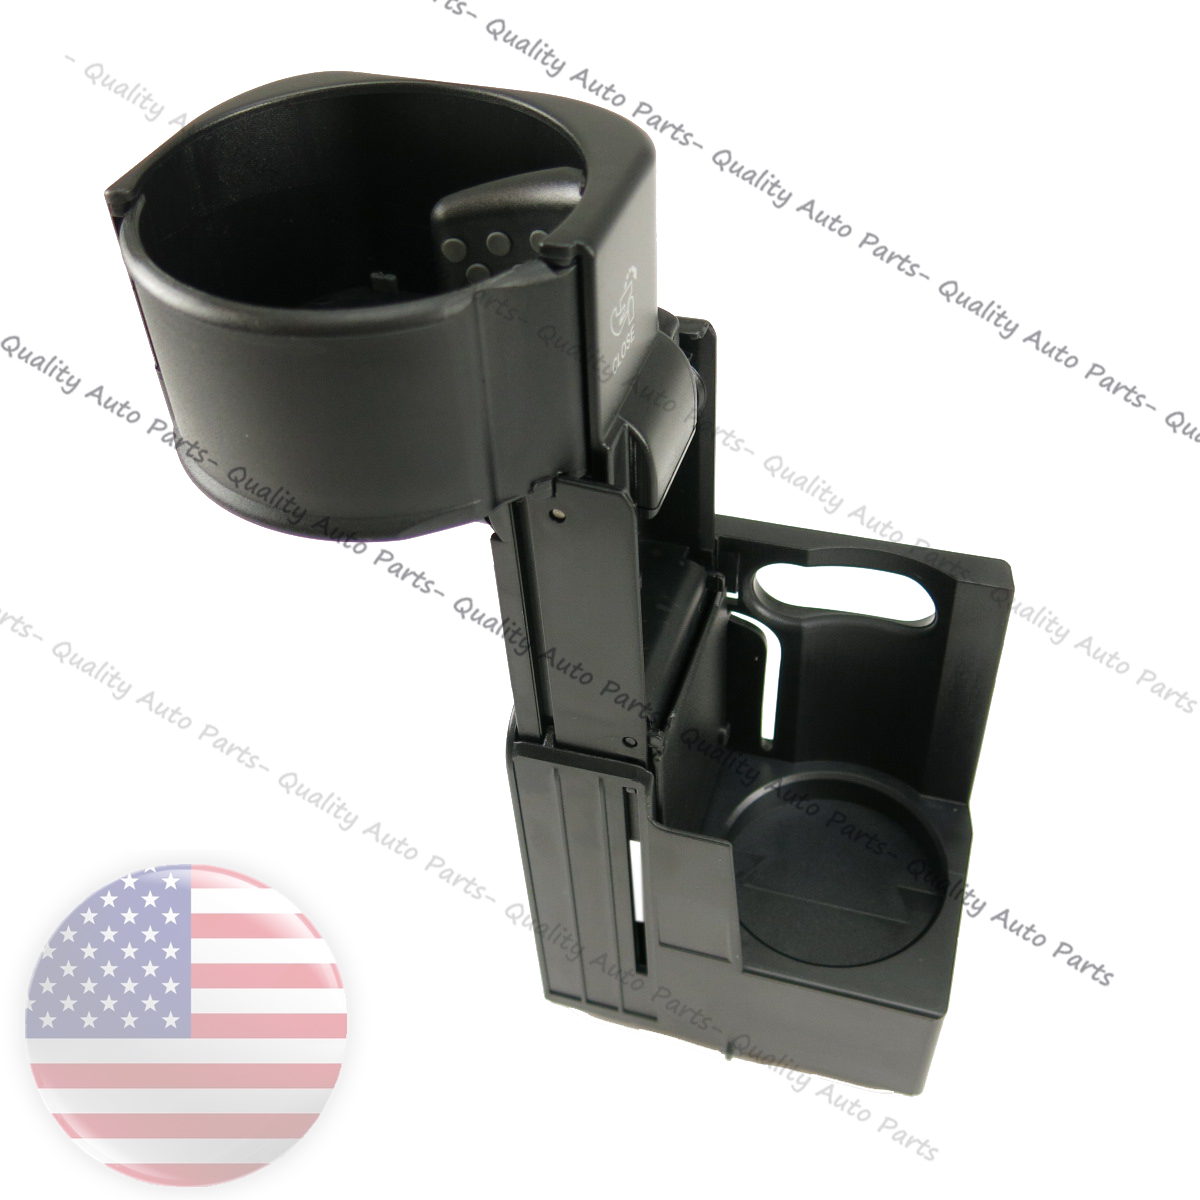 Mercedes driving gloves ebay - Cup Holder For Mercedes W211 E320 E350 E500 W219 Cls500 Cls Oem Quality Fits Mercedes Benz E500